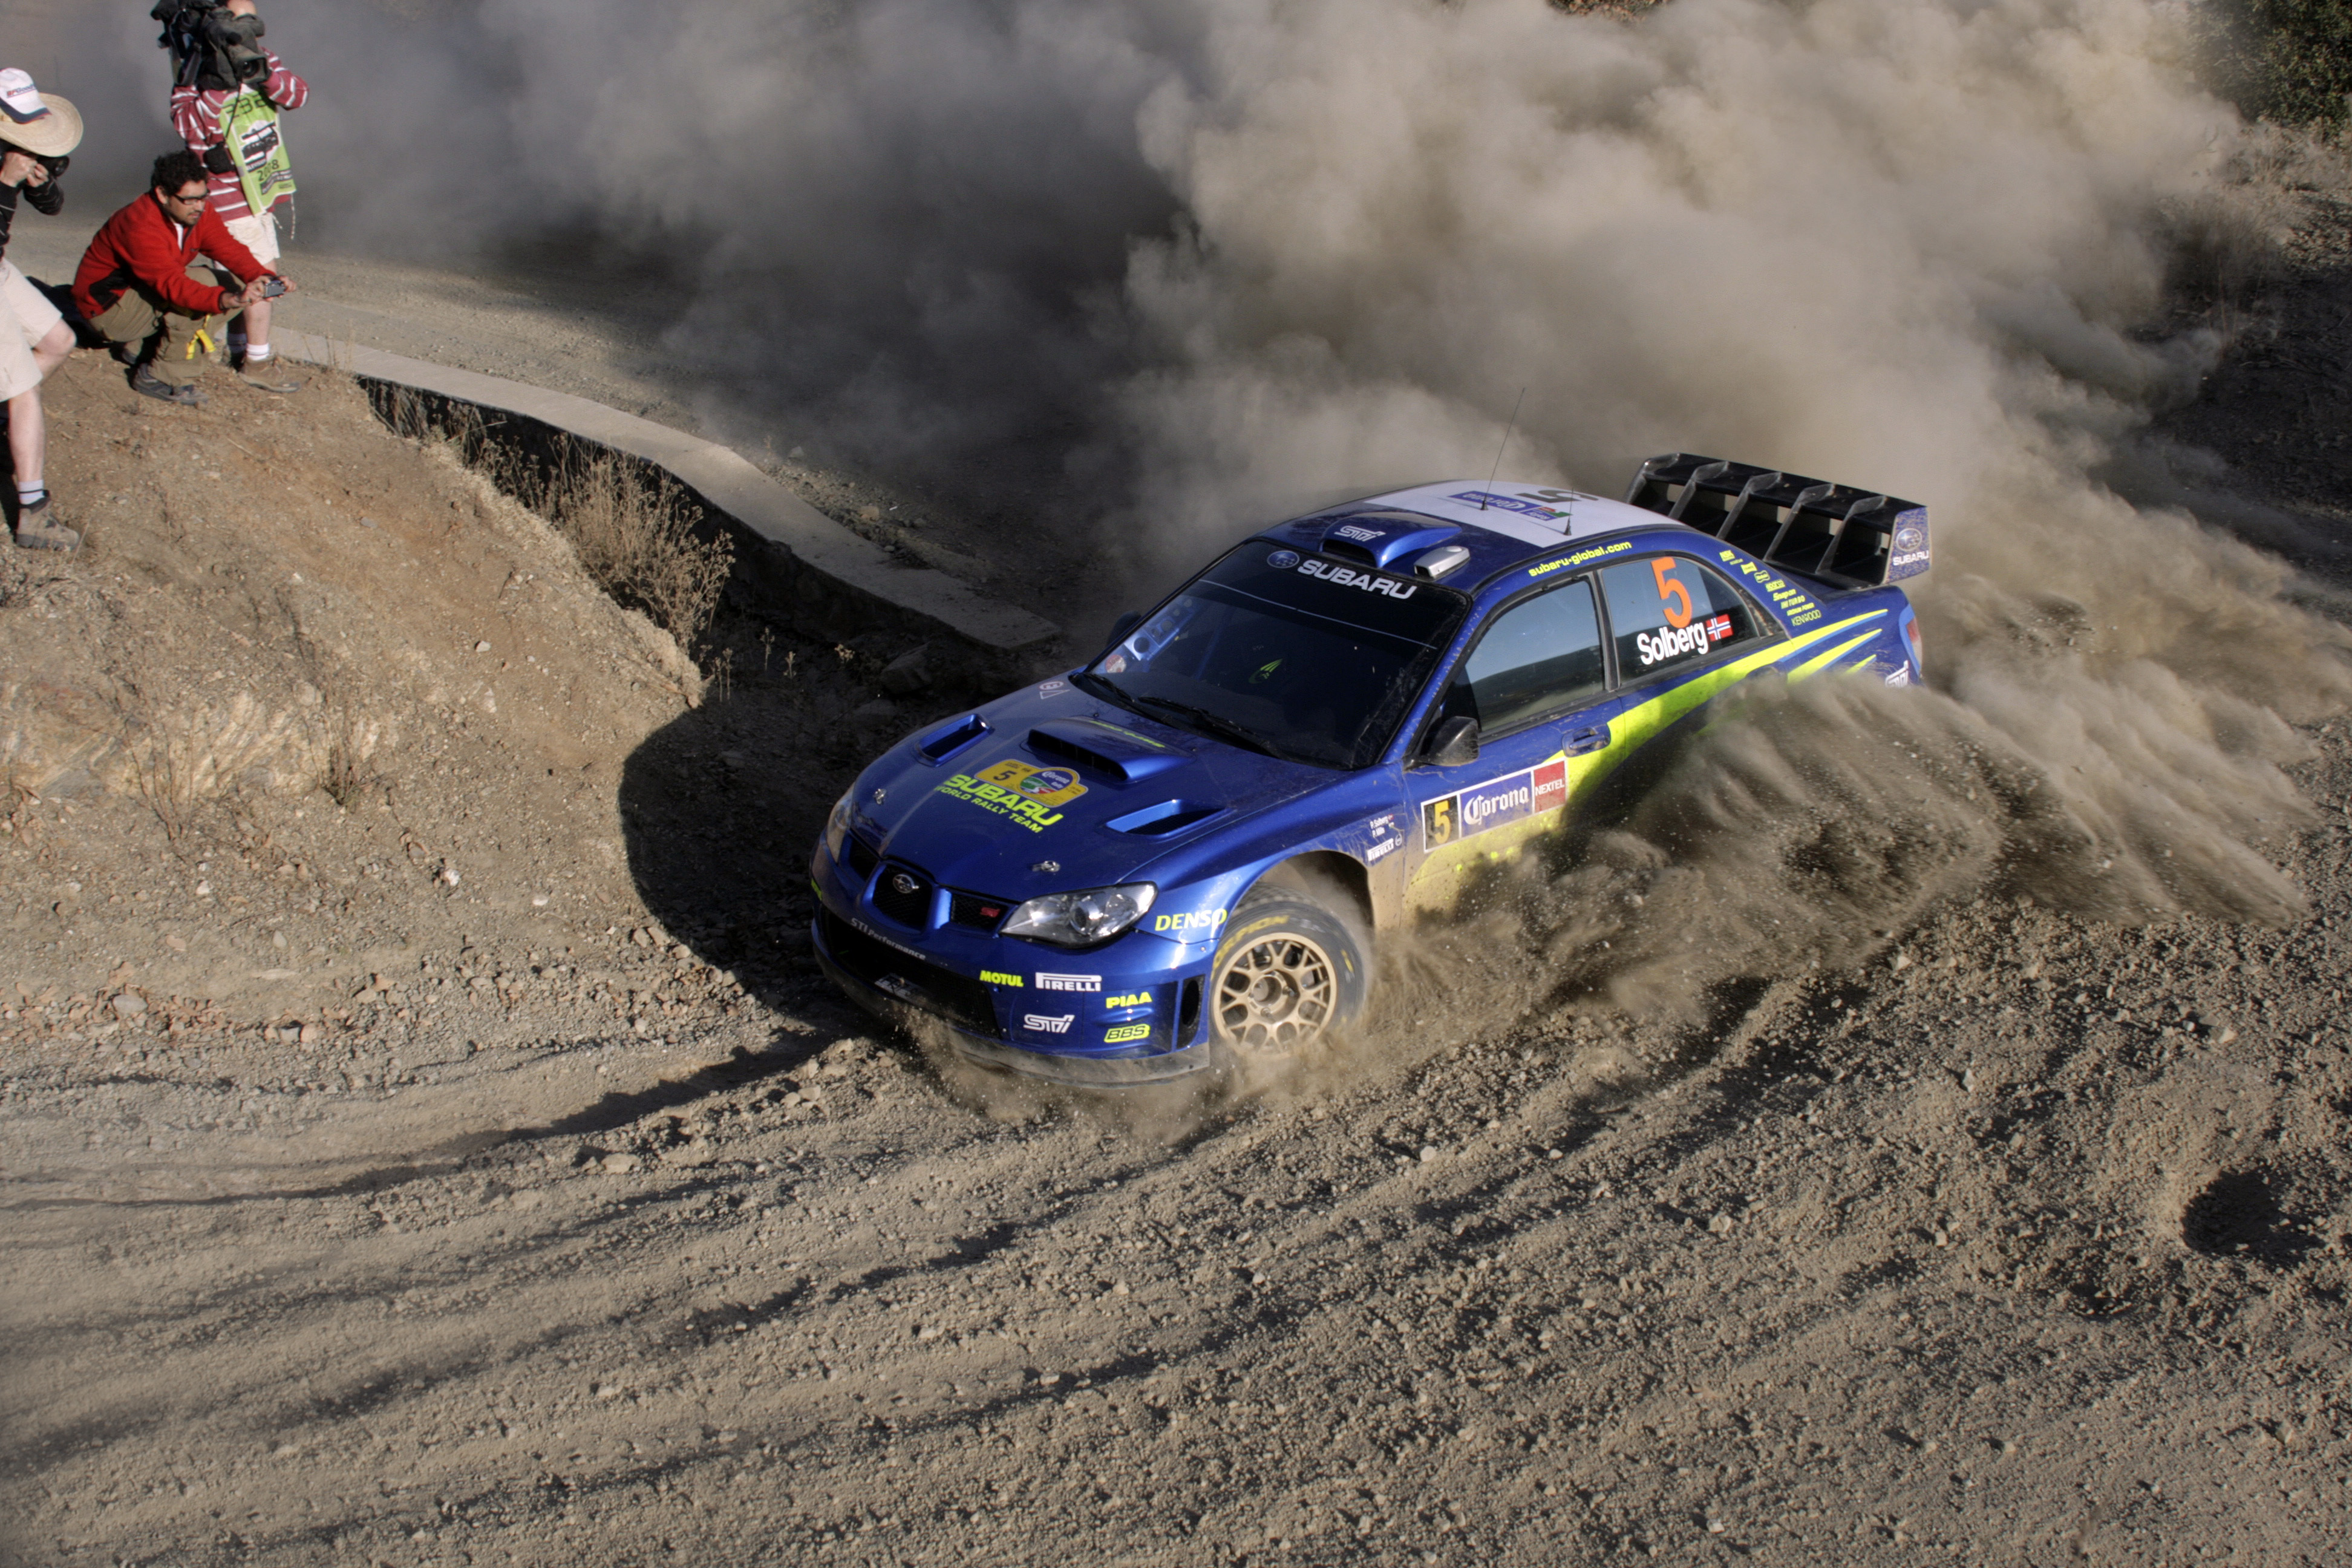 rally cars racing cars HD Wallpaper